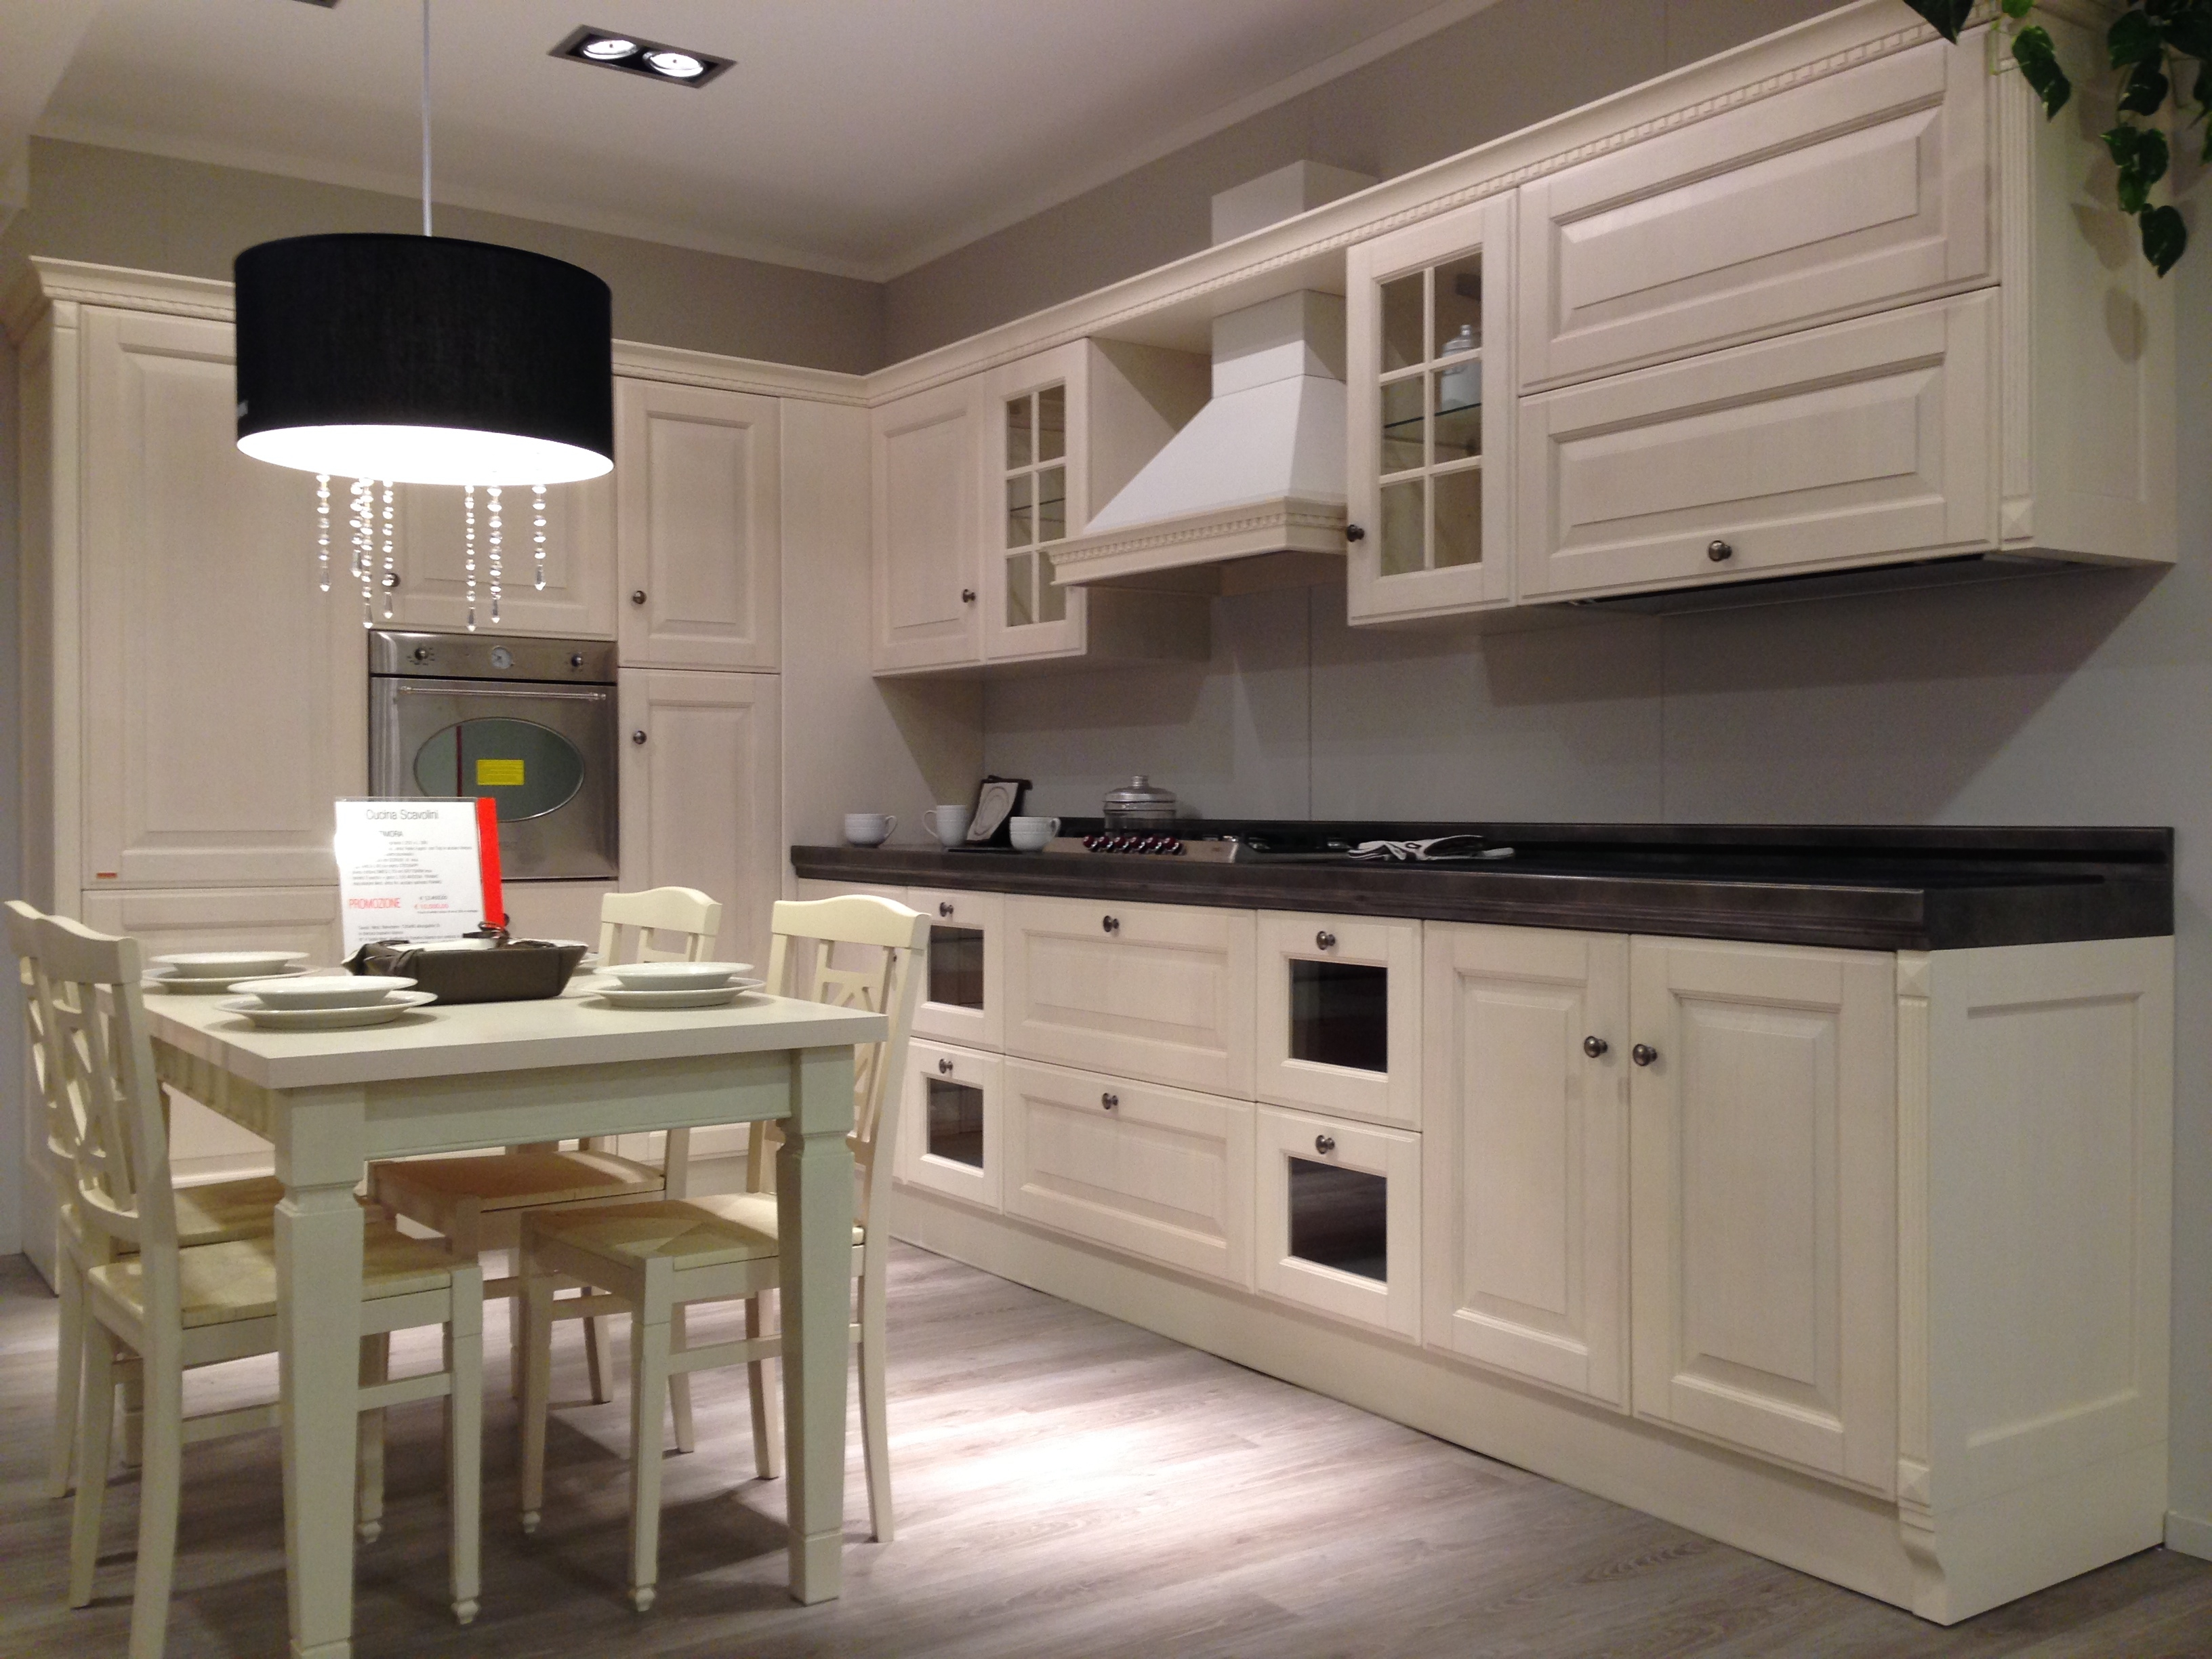 Beautiful Costo Cucina Scavolini Gallery - bakeroffroad.us ...